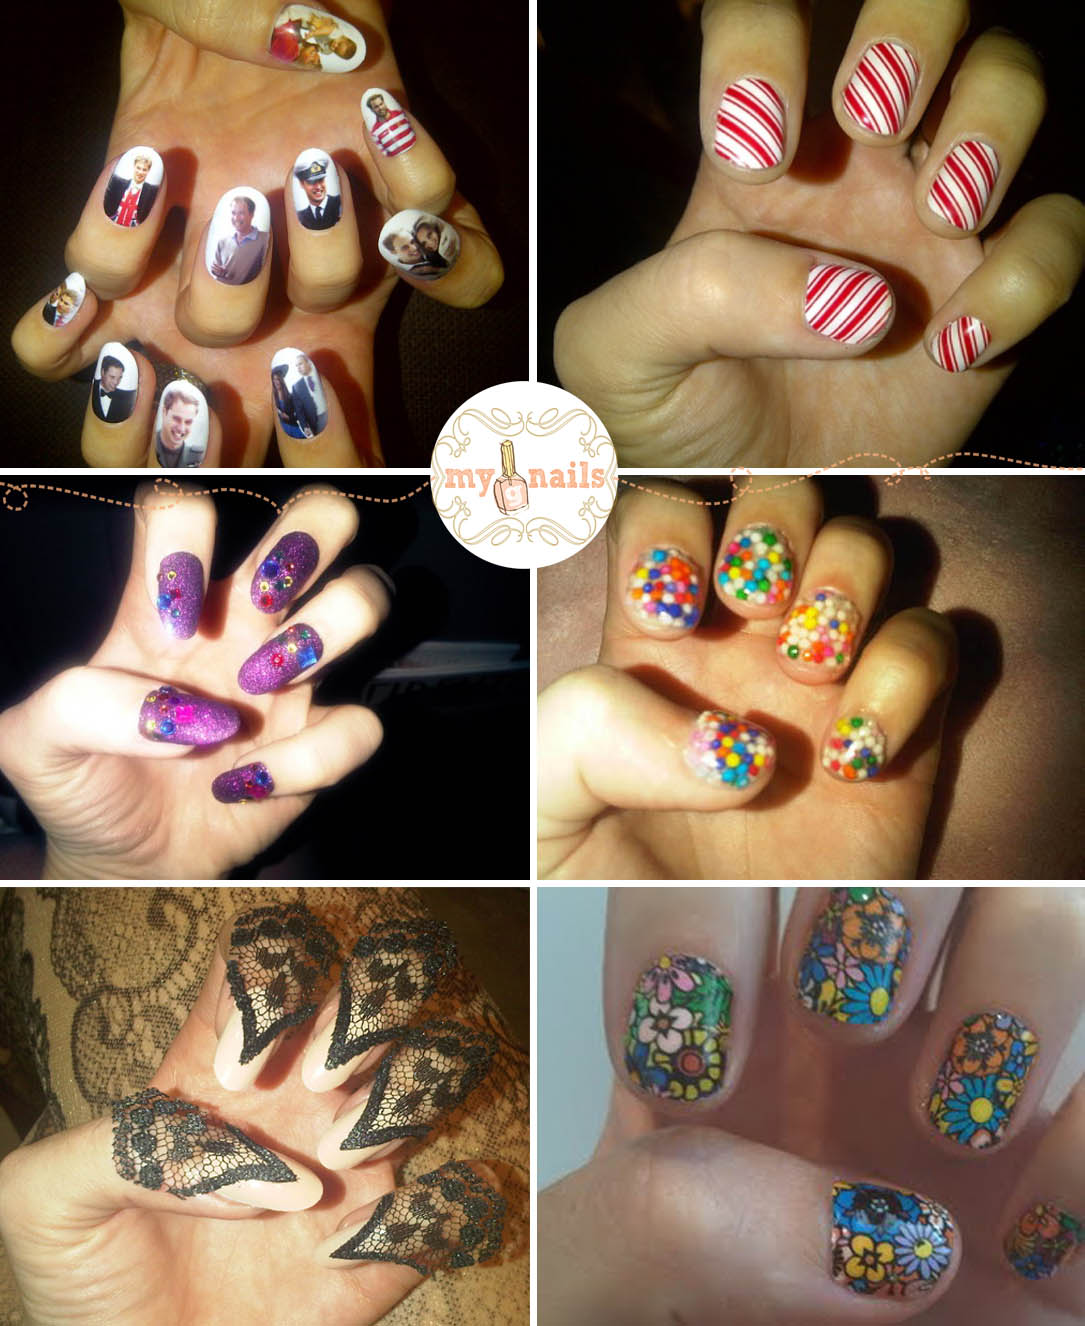 The Extraordinary Cute cat nail designs Digital Photography